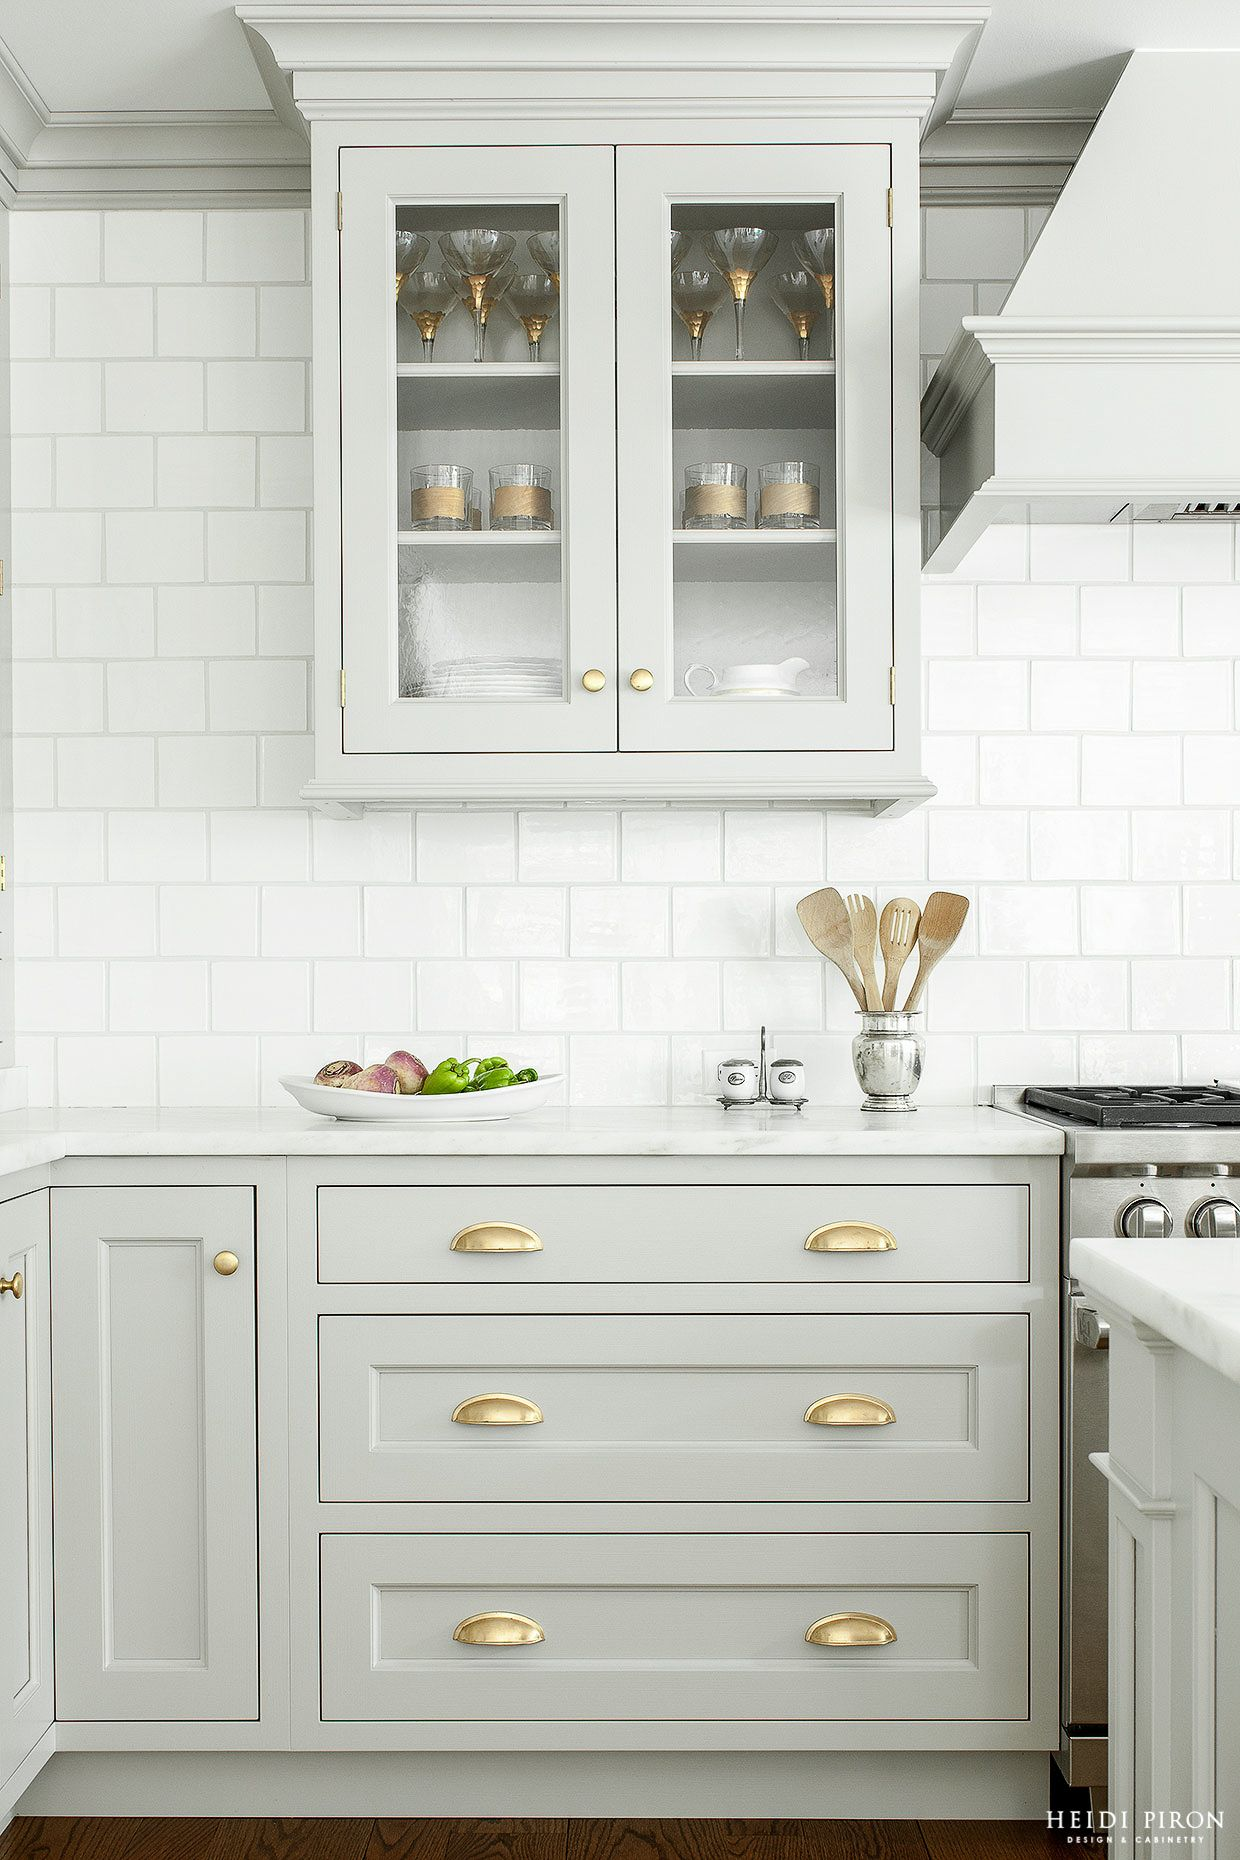 Gray cabinets with glass doors and gold hardware, white subway tile ...